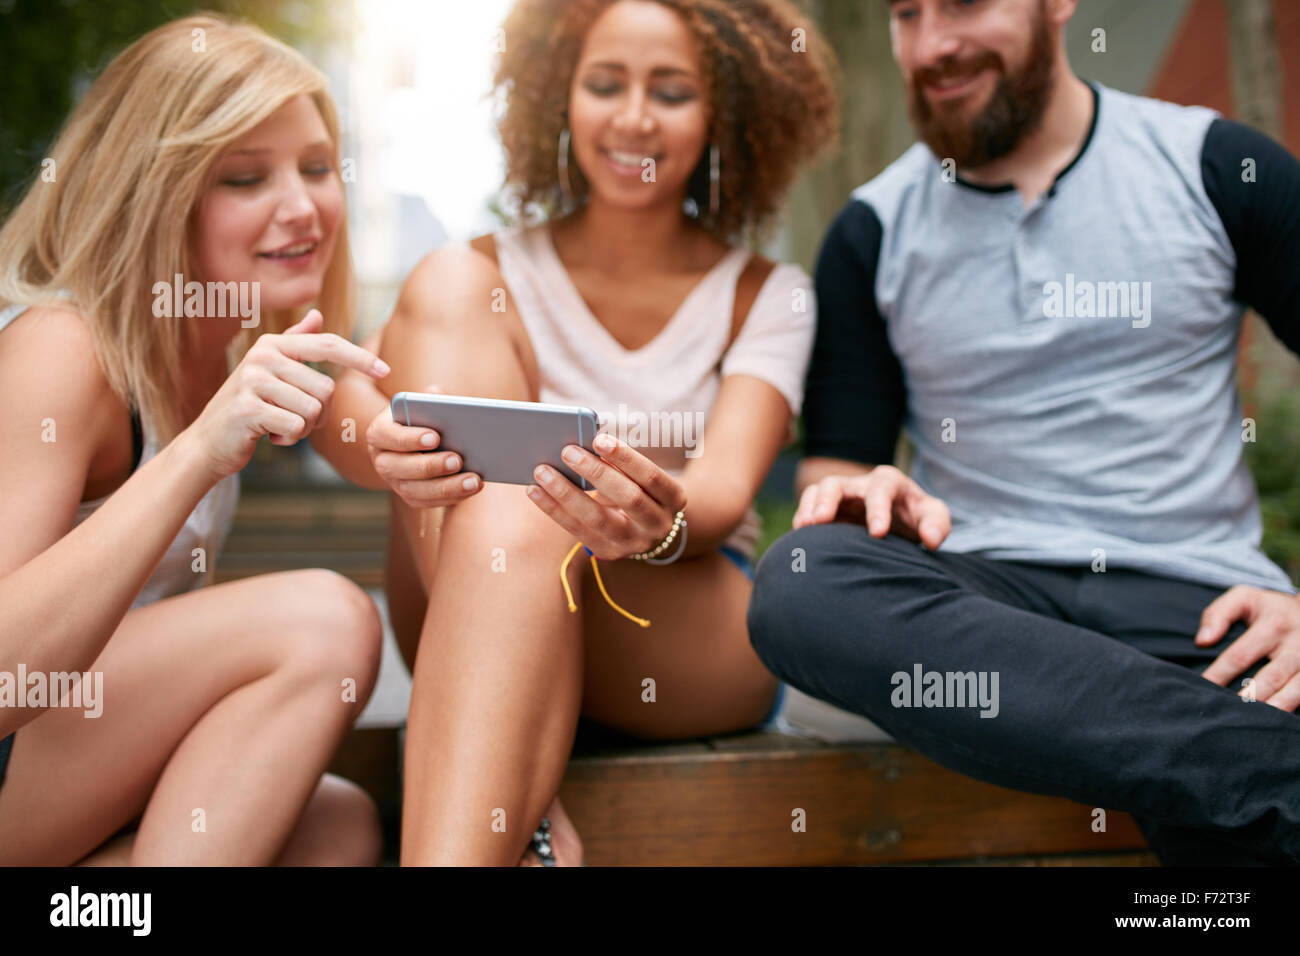 Close up shot of young adults looking something interesting on cellphone. Young friends using mobile phone while - Stock Image